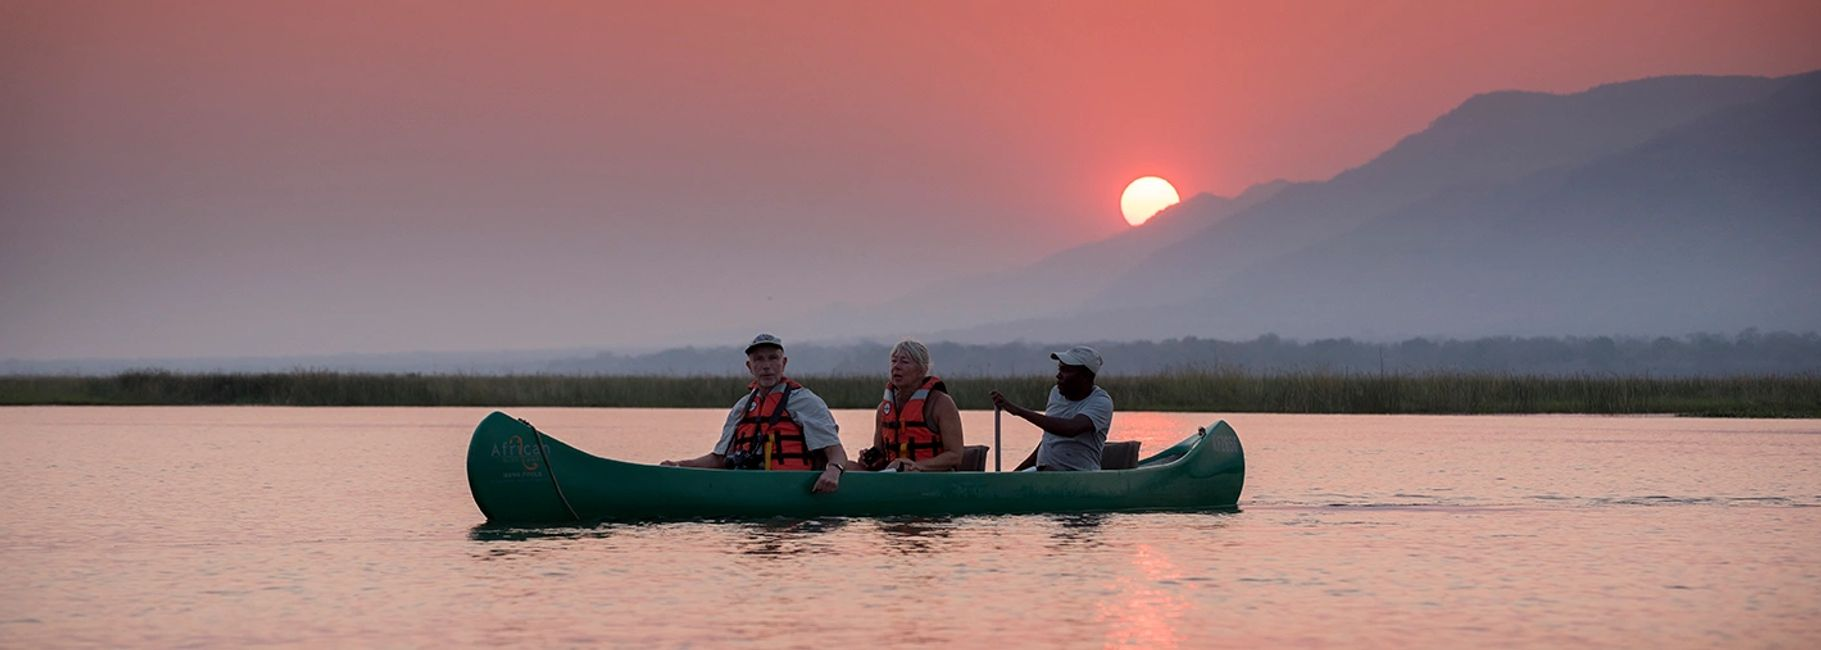 Canoeing Safari on the lower Zambezi River, Mana Pools National Park, Zimbabwe, Africa